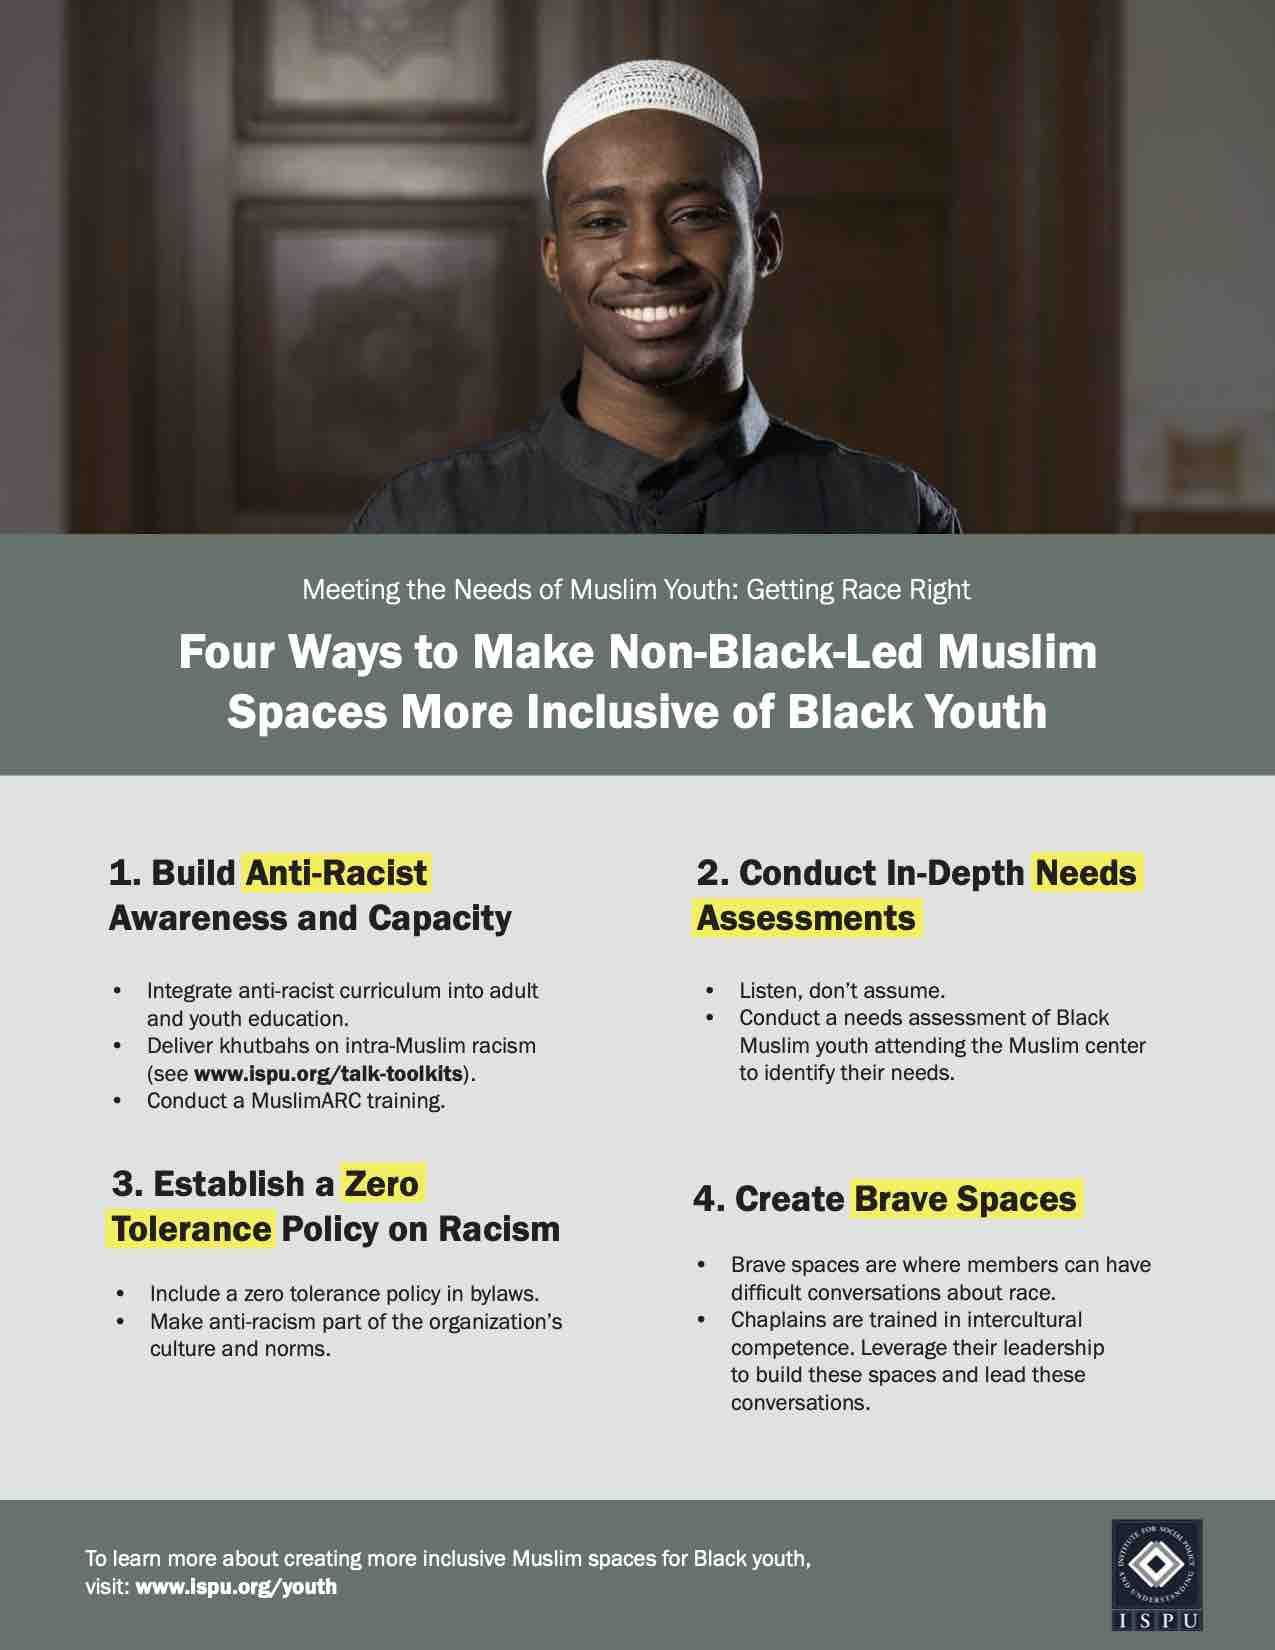 Infographic: Four Ways to Make Non-Black-Led Muslim Spaces More Inclusive of Black Youth